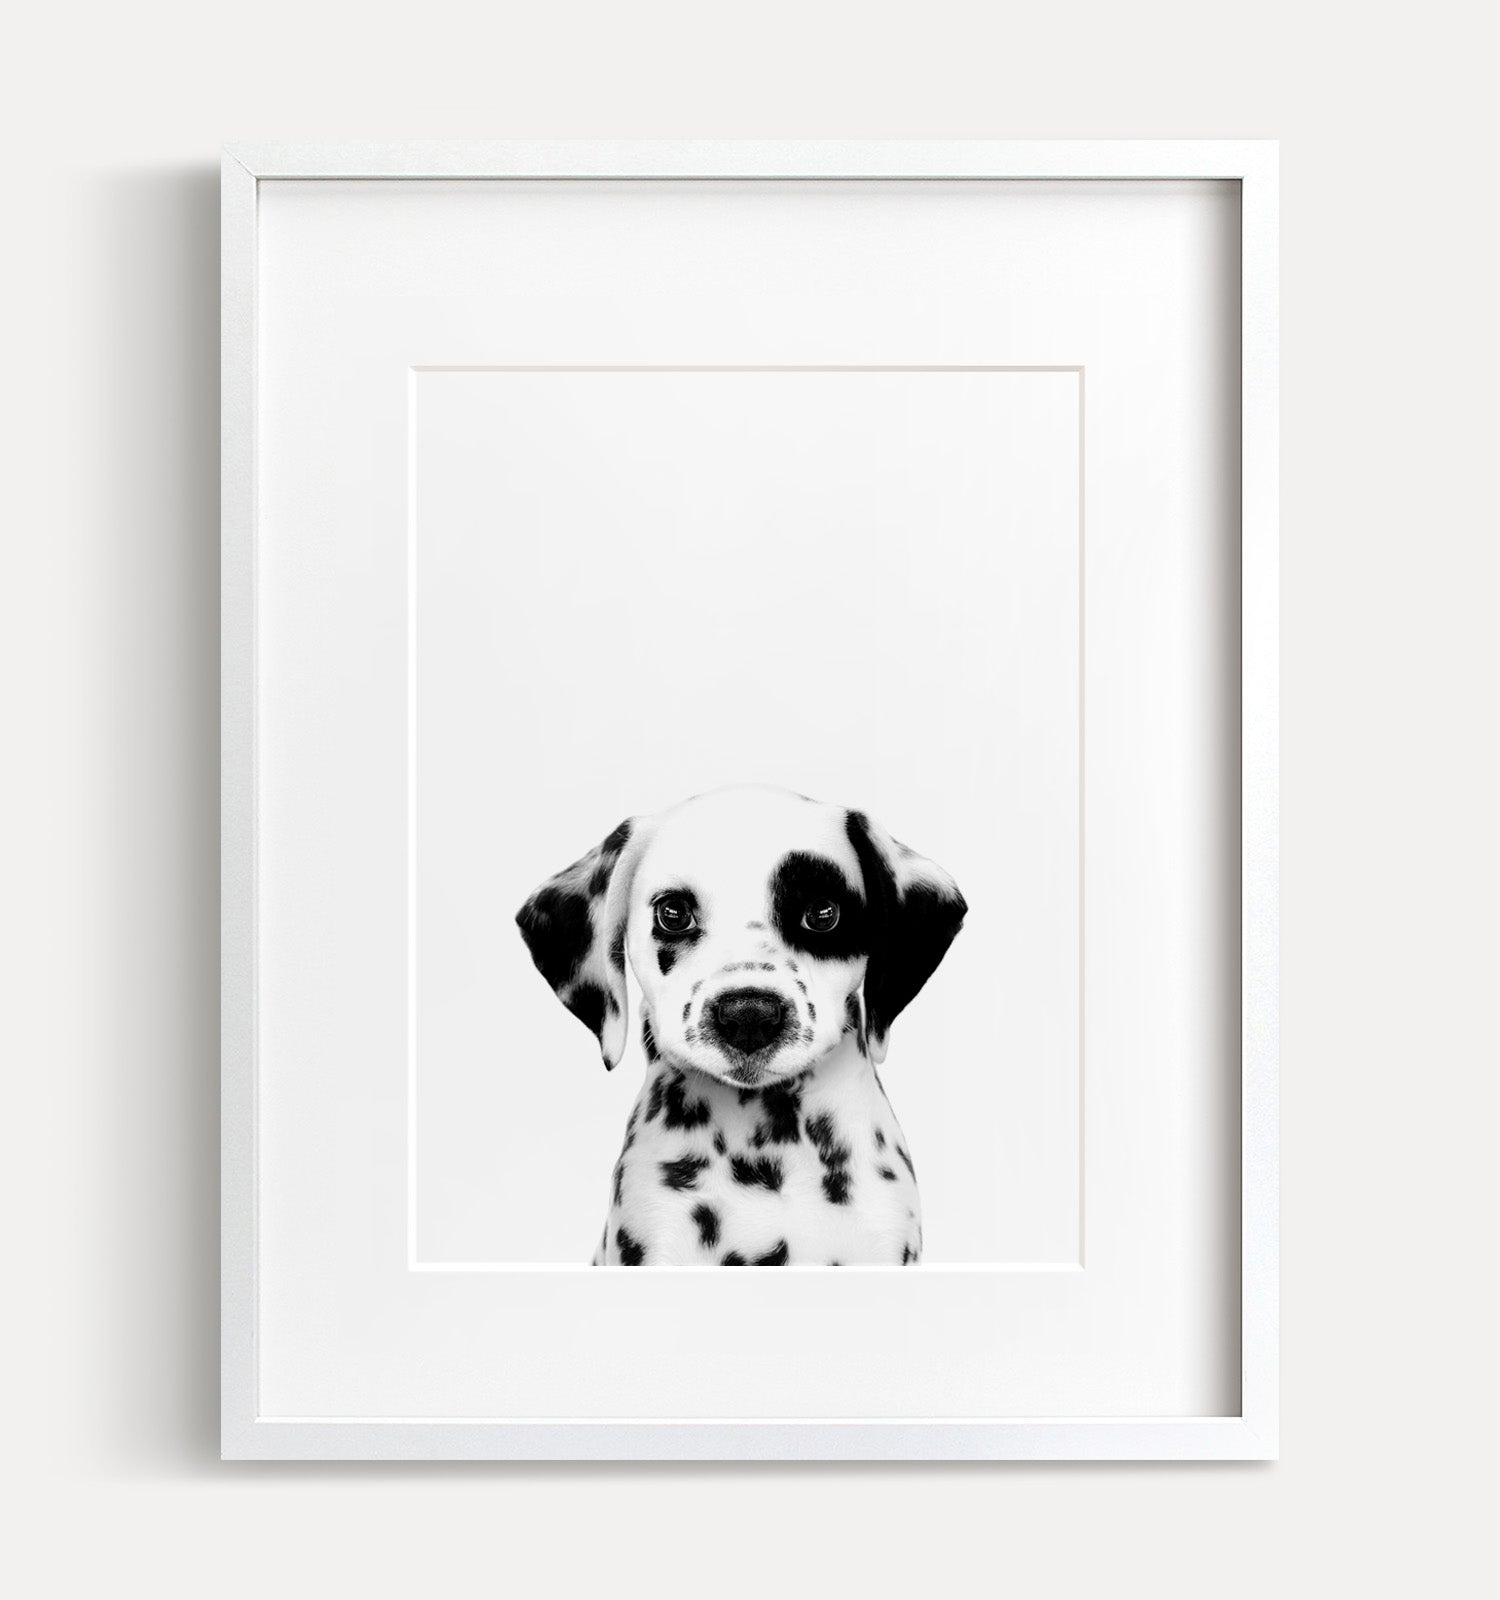 photo regarding Dalmation Printable titled Kid Dalmatian Doggy Black and White Printable Artwork